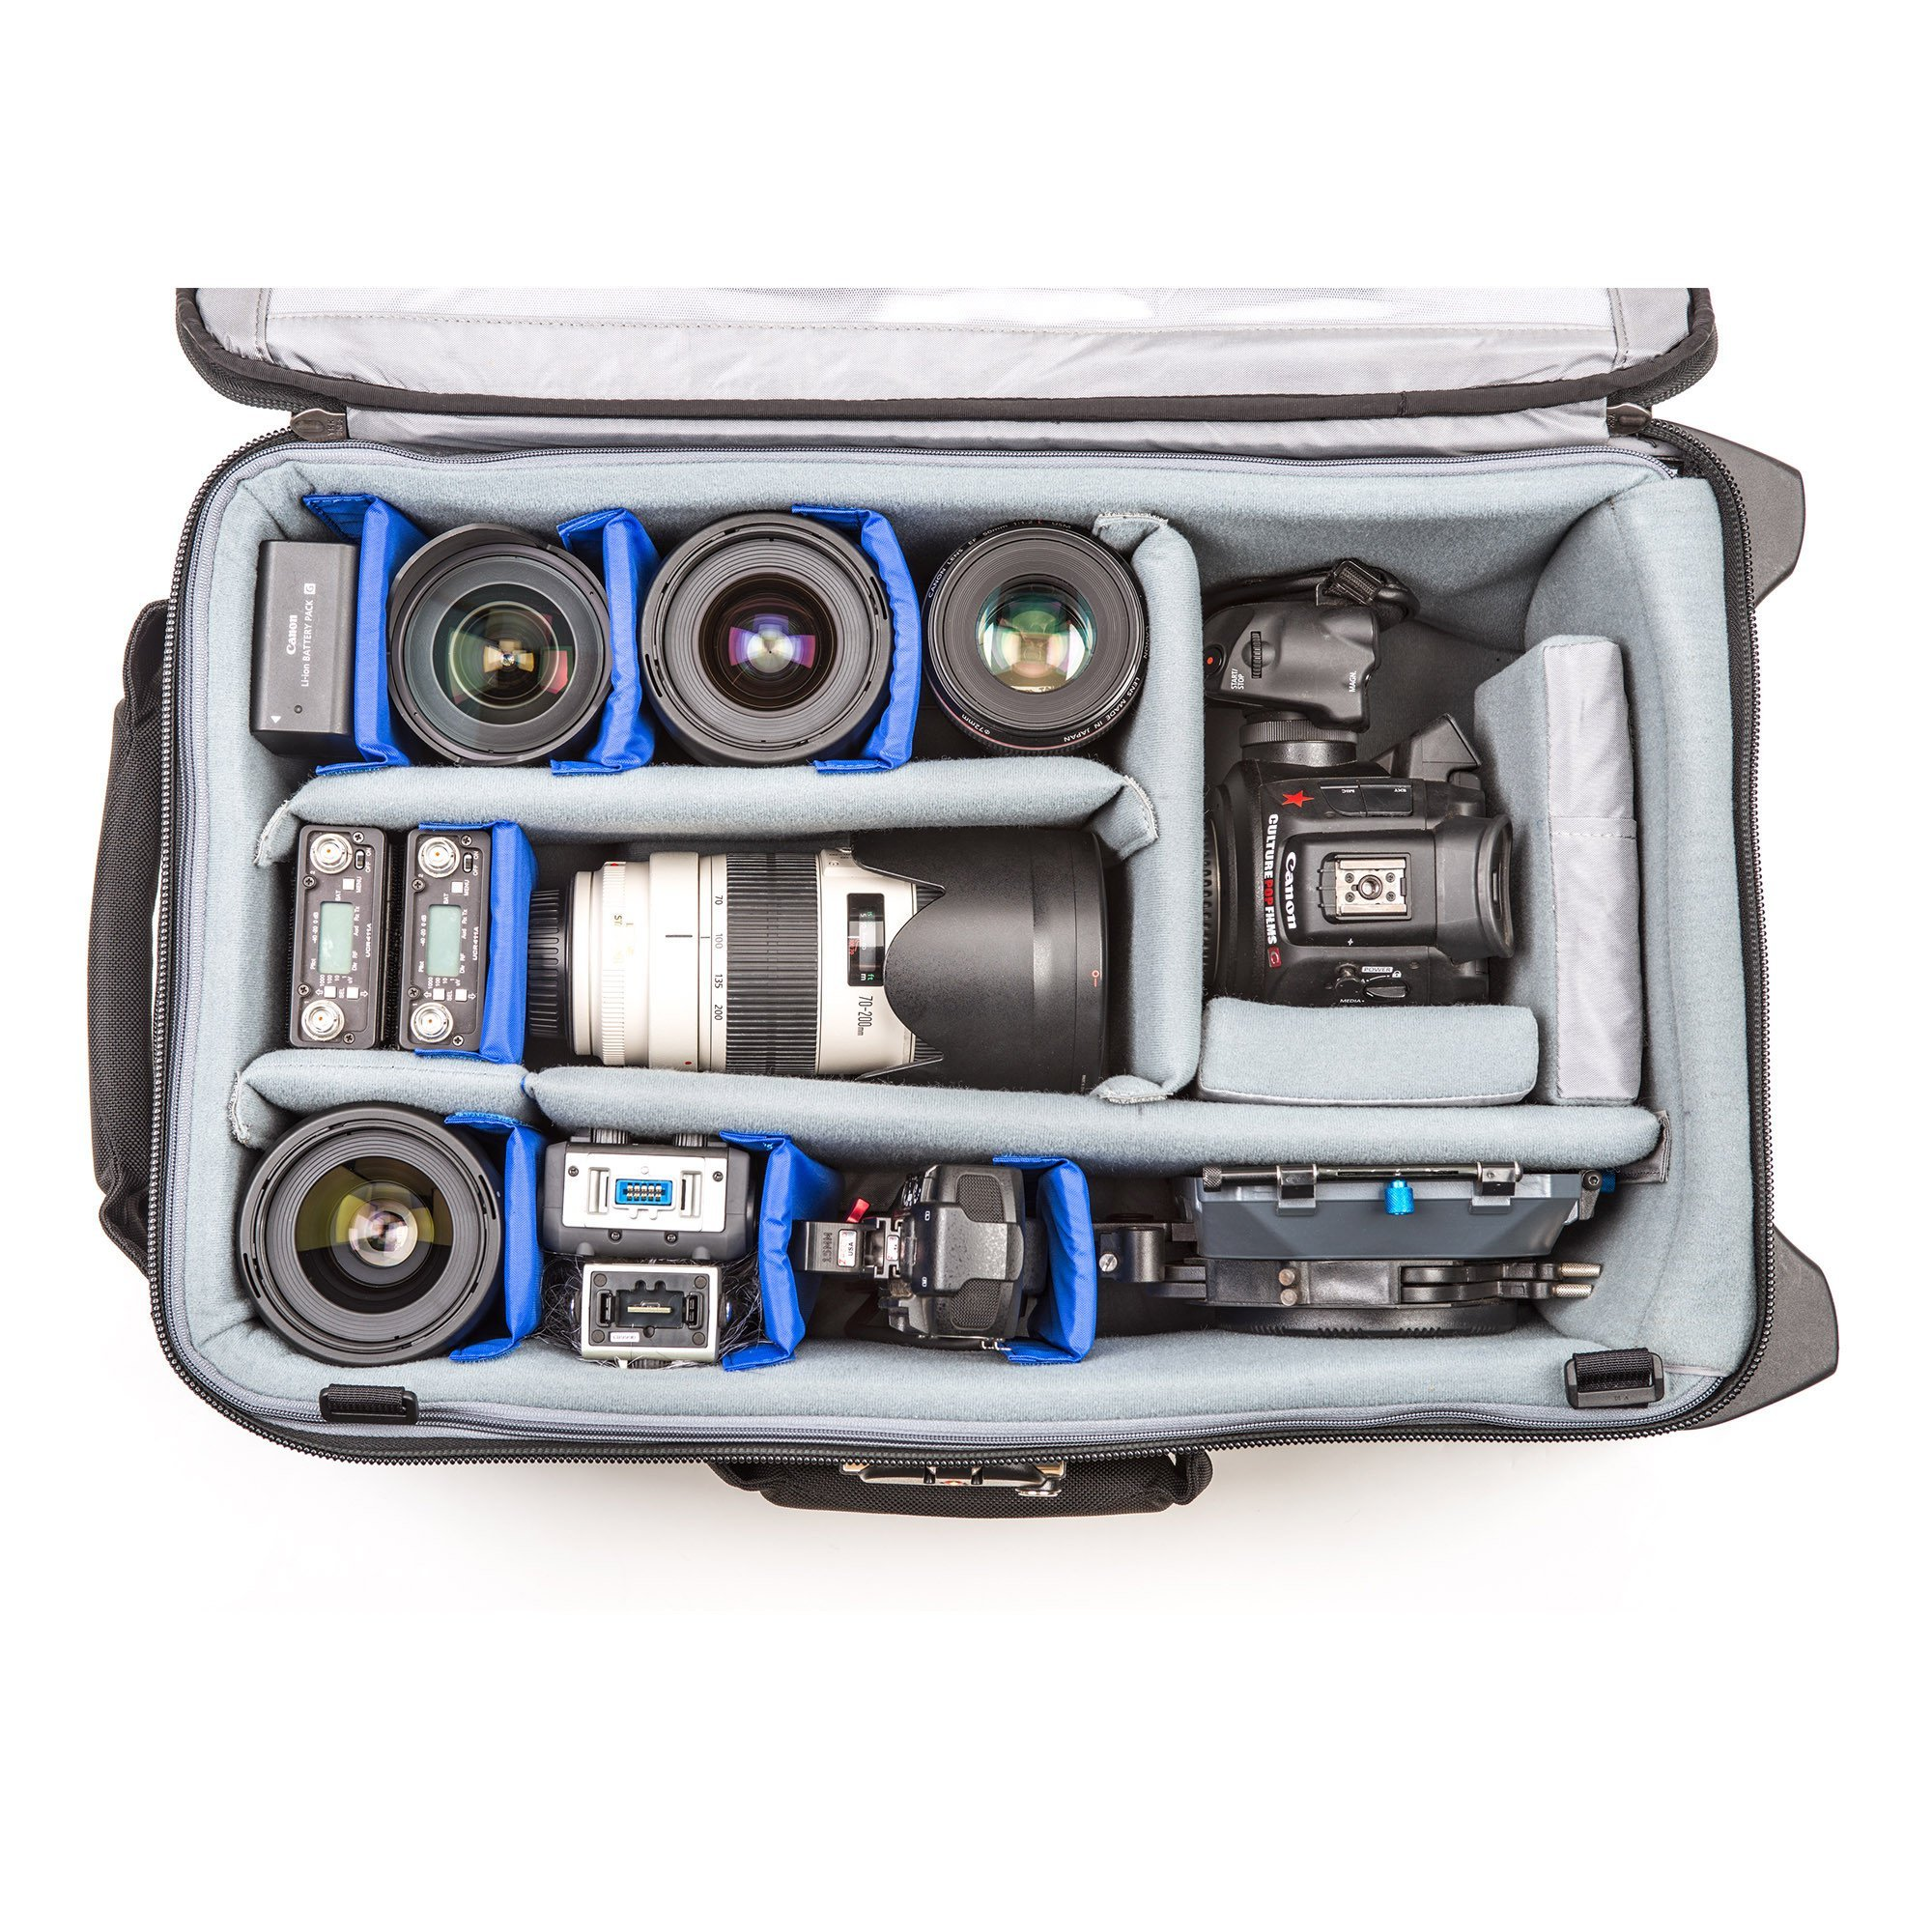 Think Tank Photo Video Transport 20 Carry-On Case (Pacific Slate) by Think Tank (Image #7)